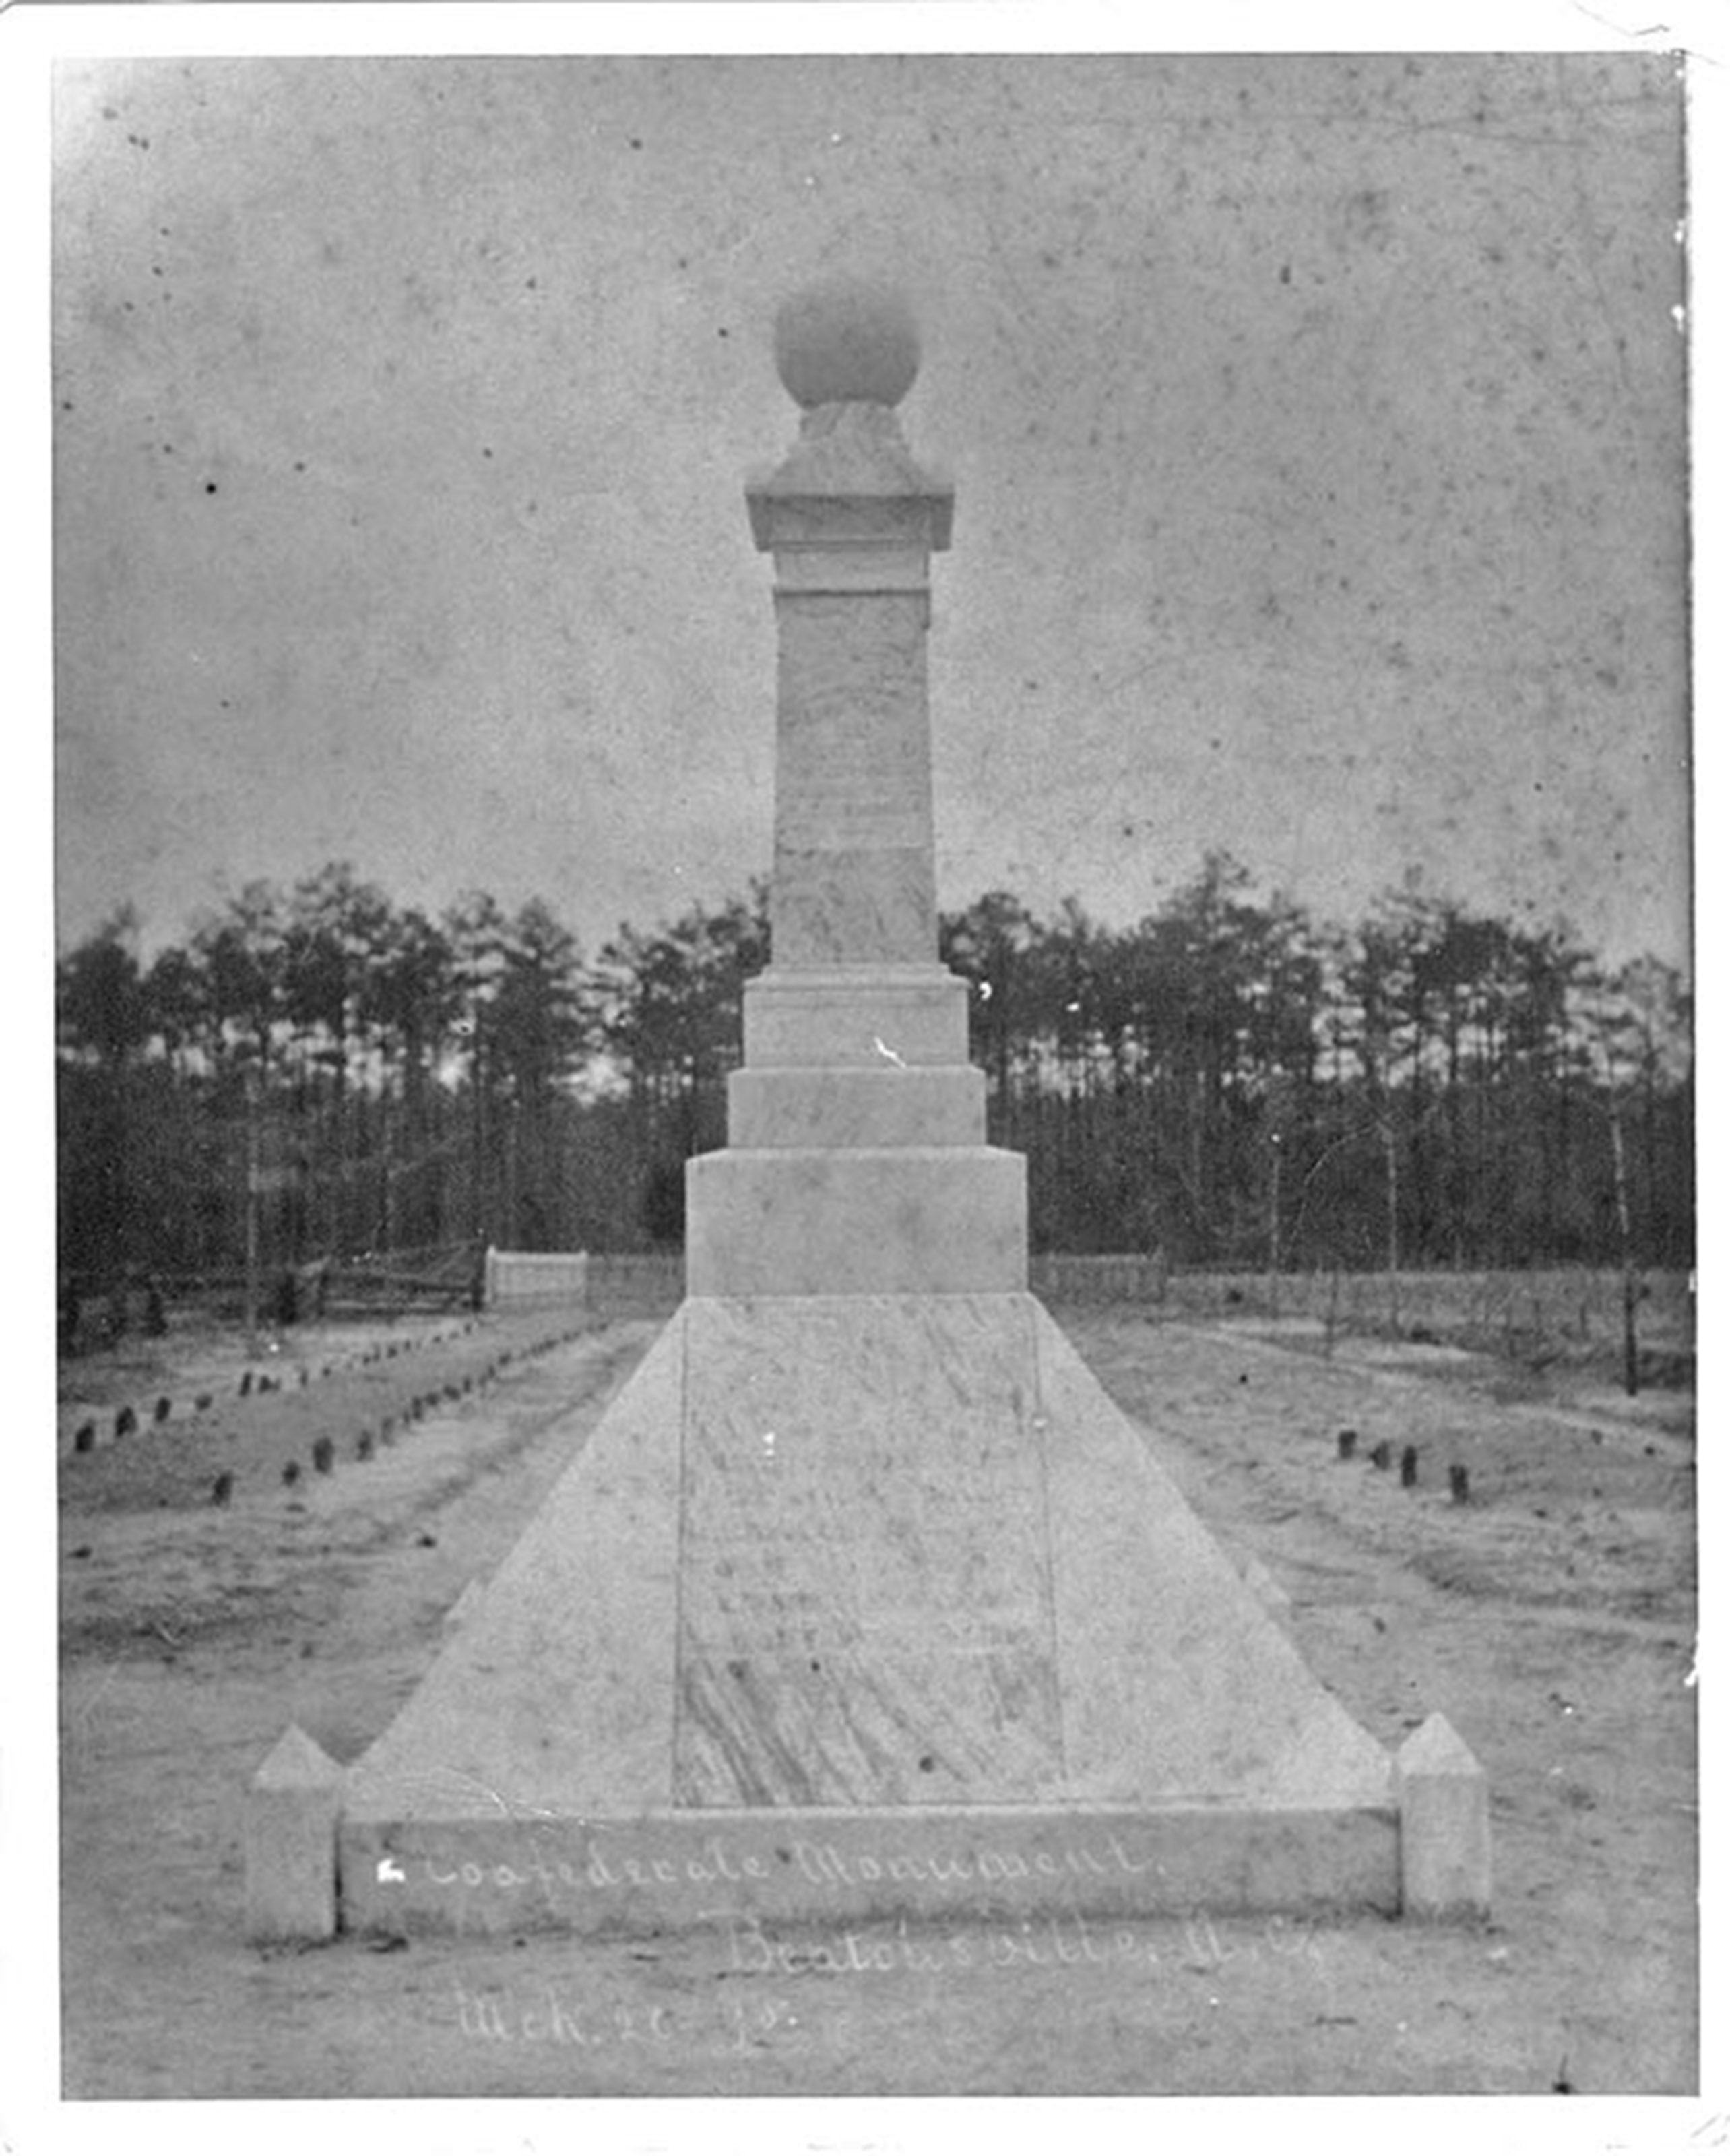 An 1895 photograph of the Goldsboro Rifles Monument that showed wooden grave markers led archaeologists to revise their search parameters